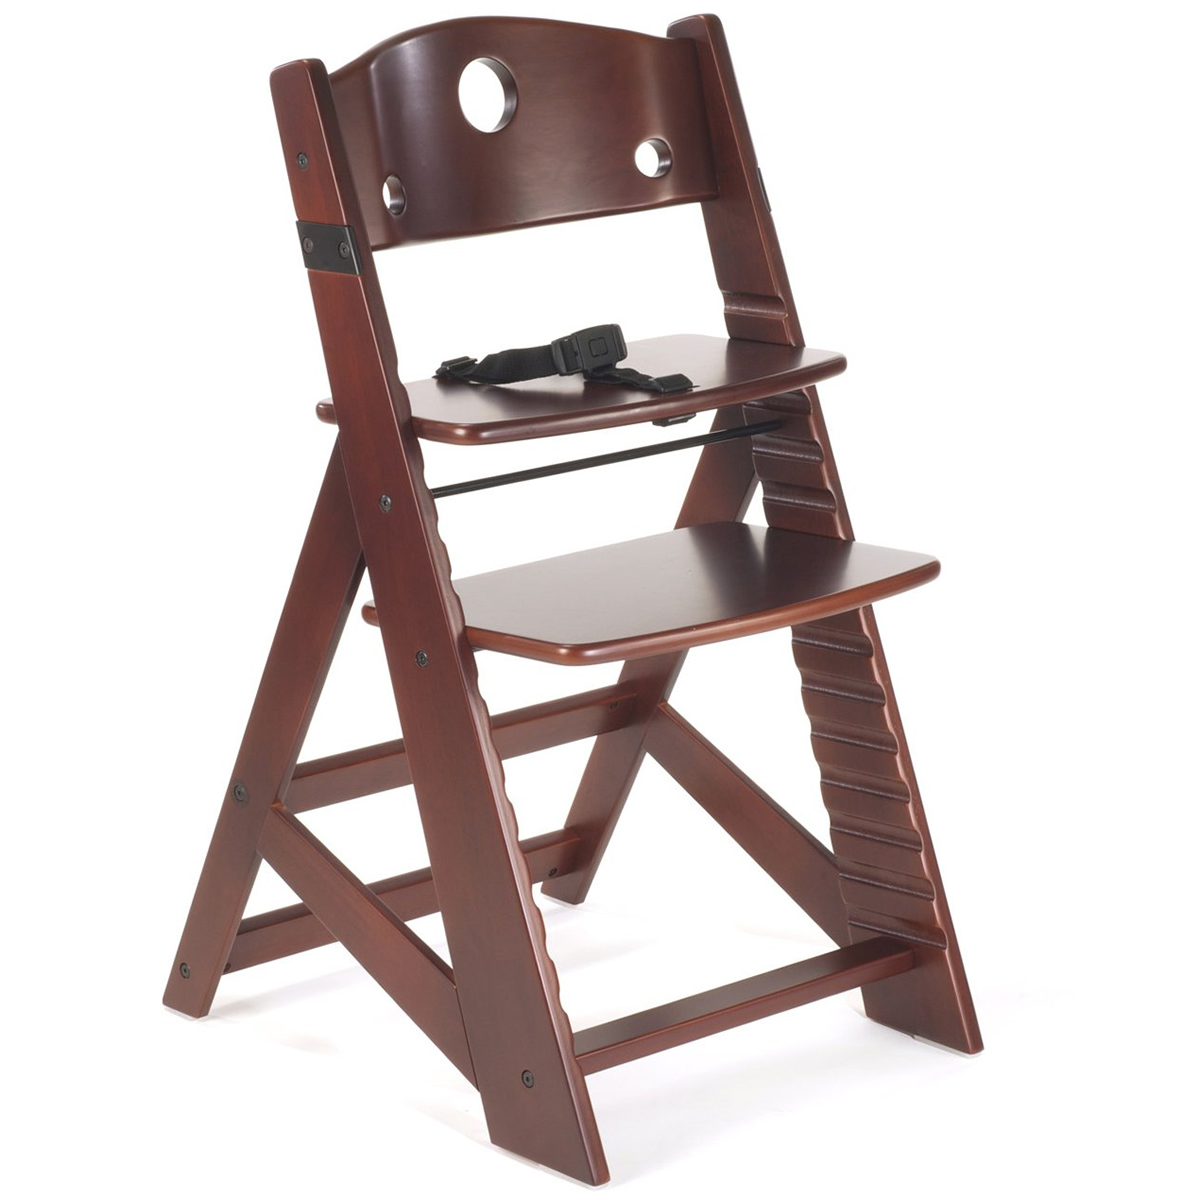 albee baby high chair folding lawn chairs lowes keekaroo height right kids mahogany